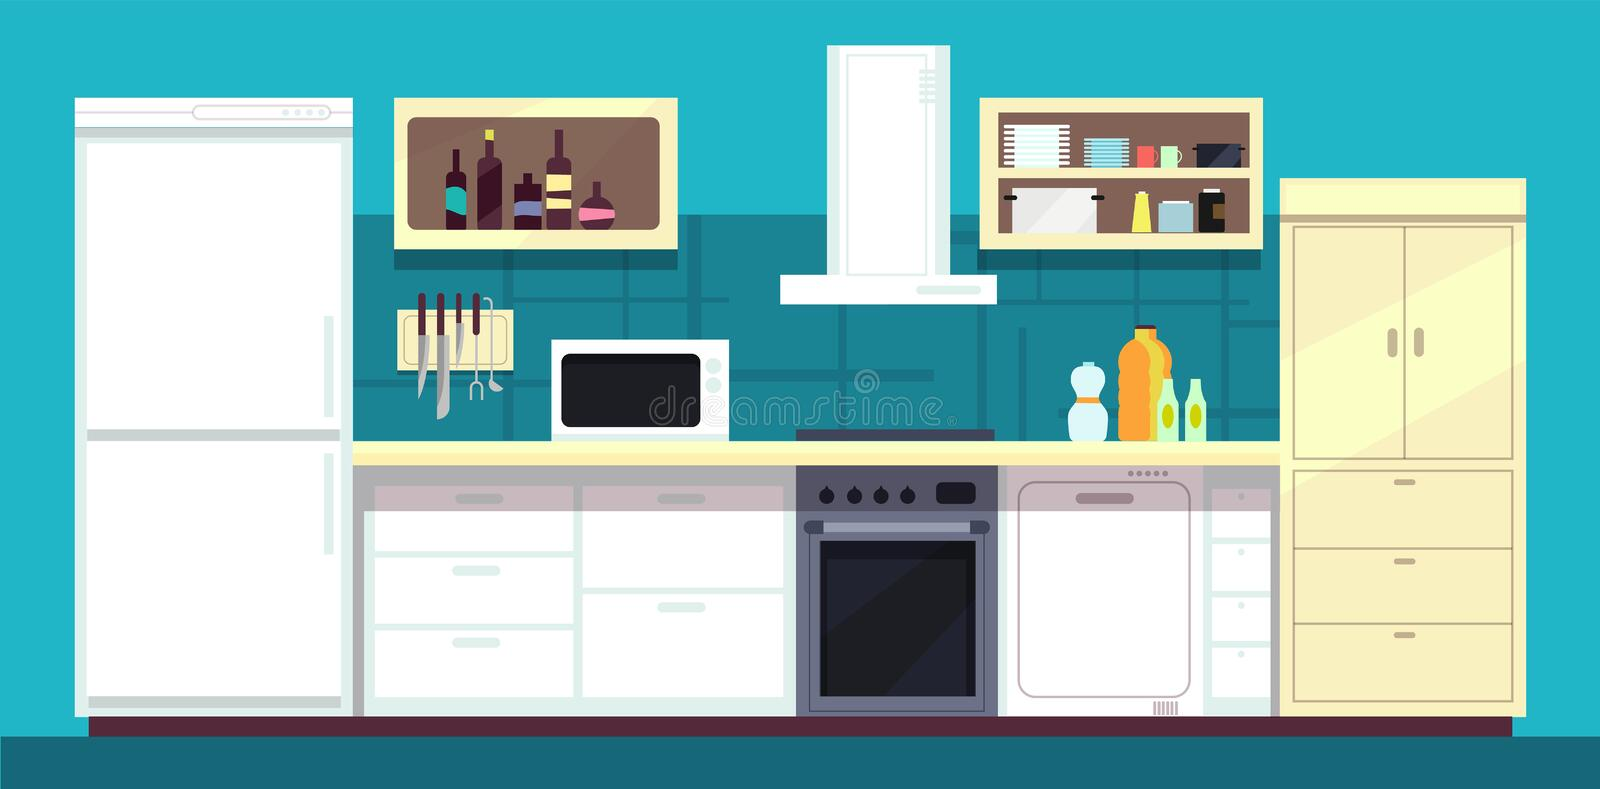 Cartoon kitchen interior with fridge, oven and other home cooking appliances vector illustration vector illustration